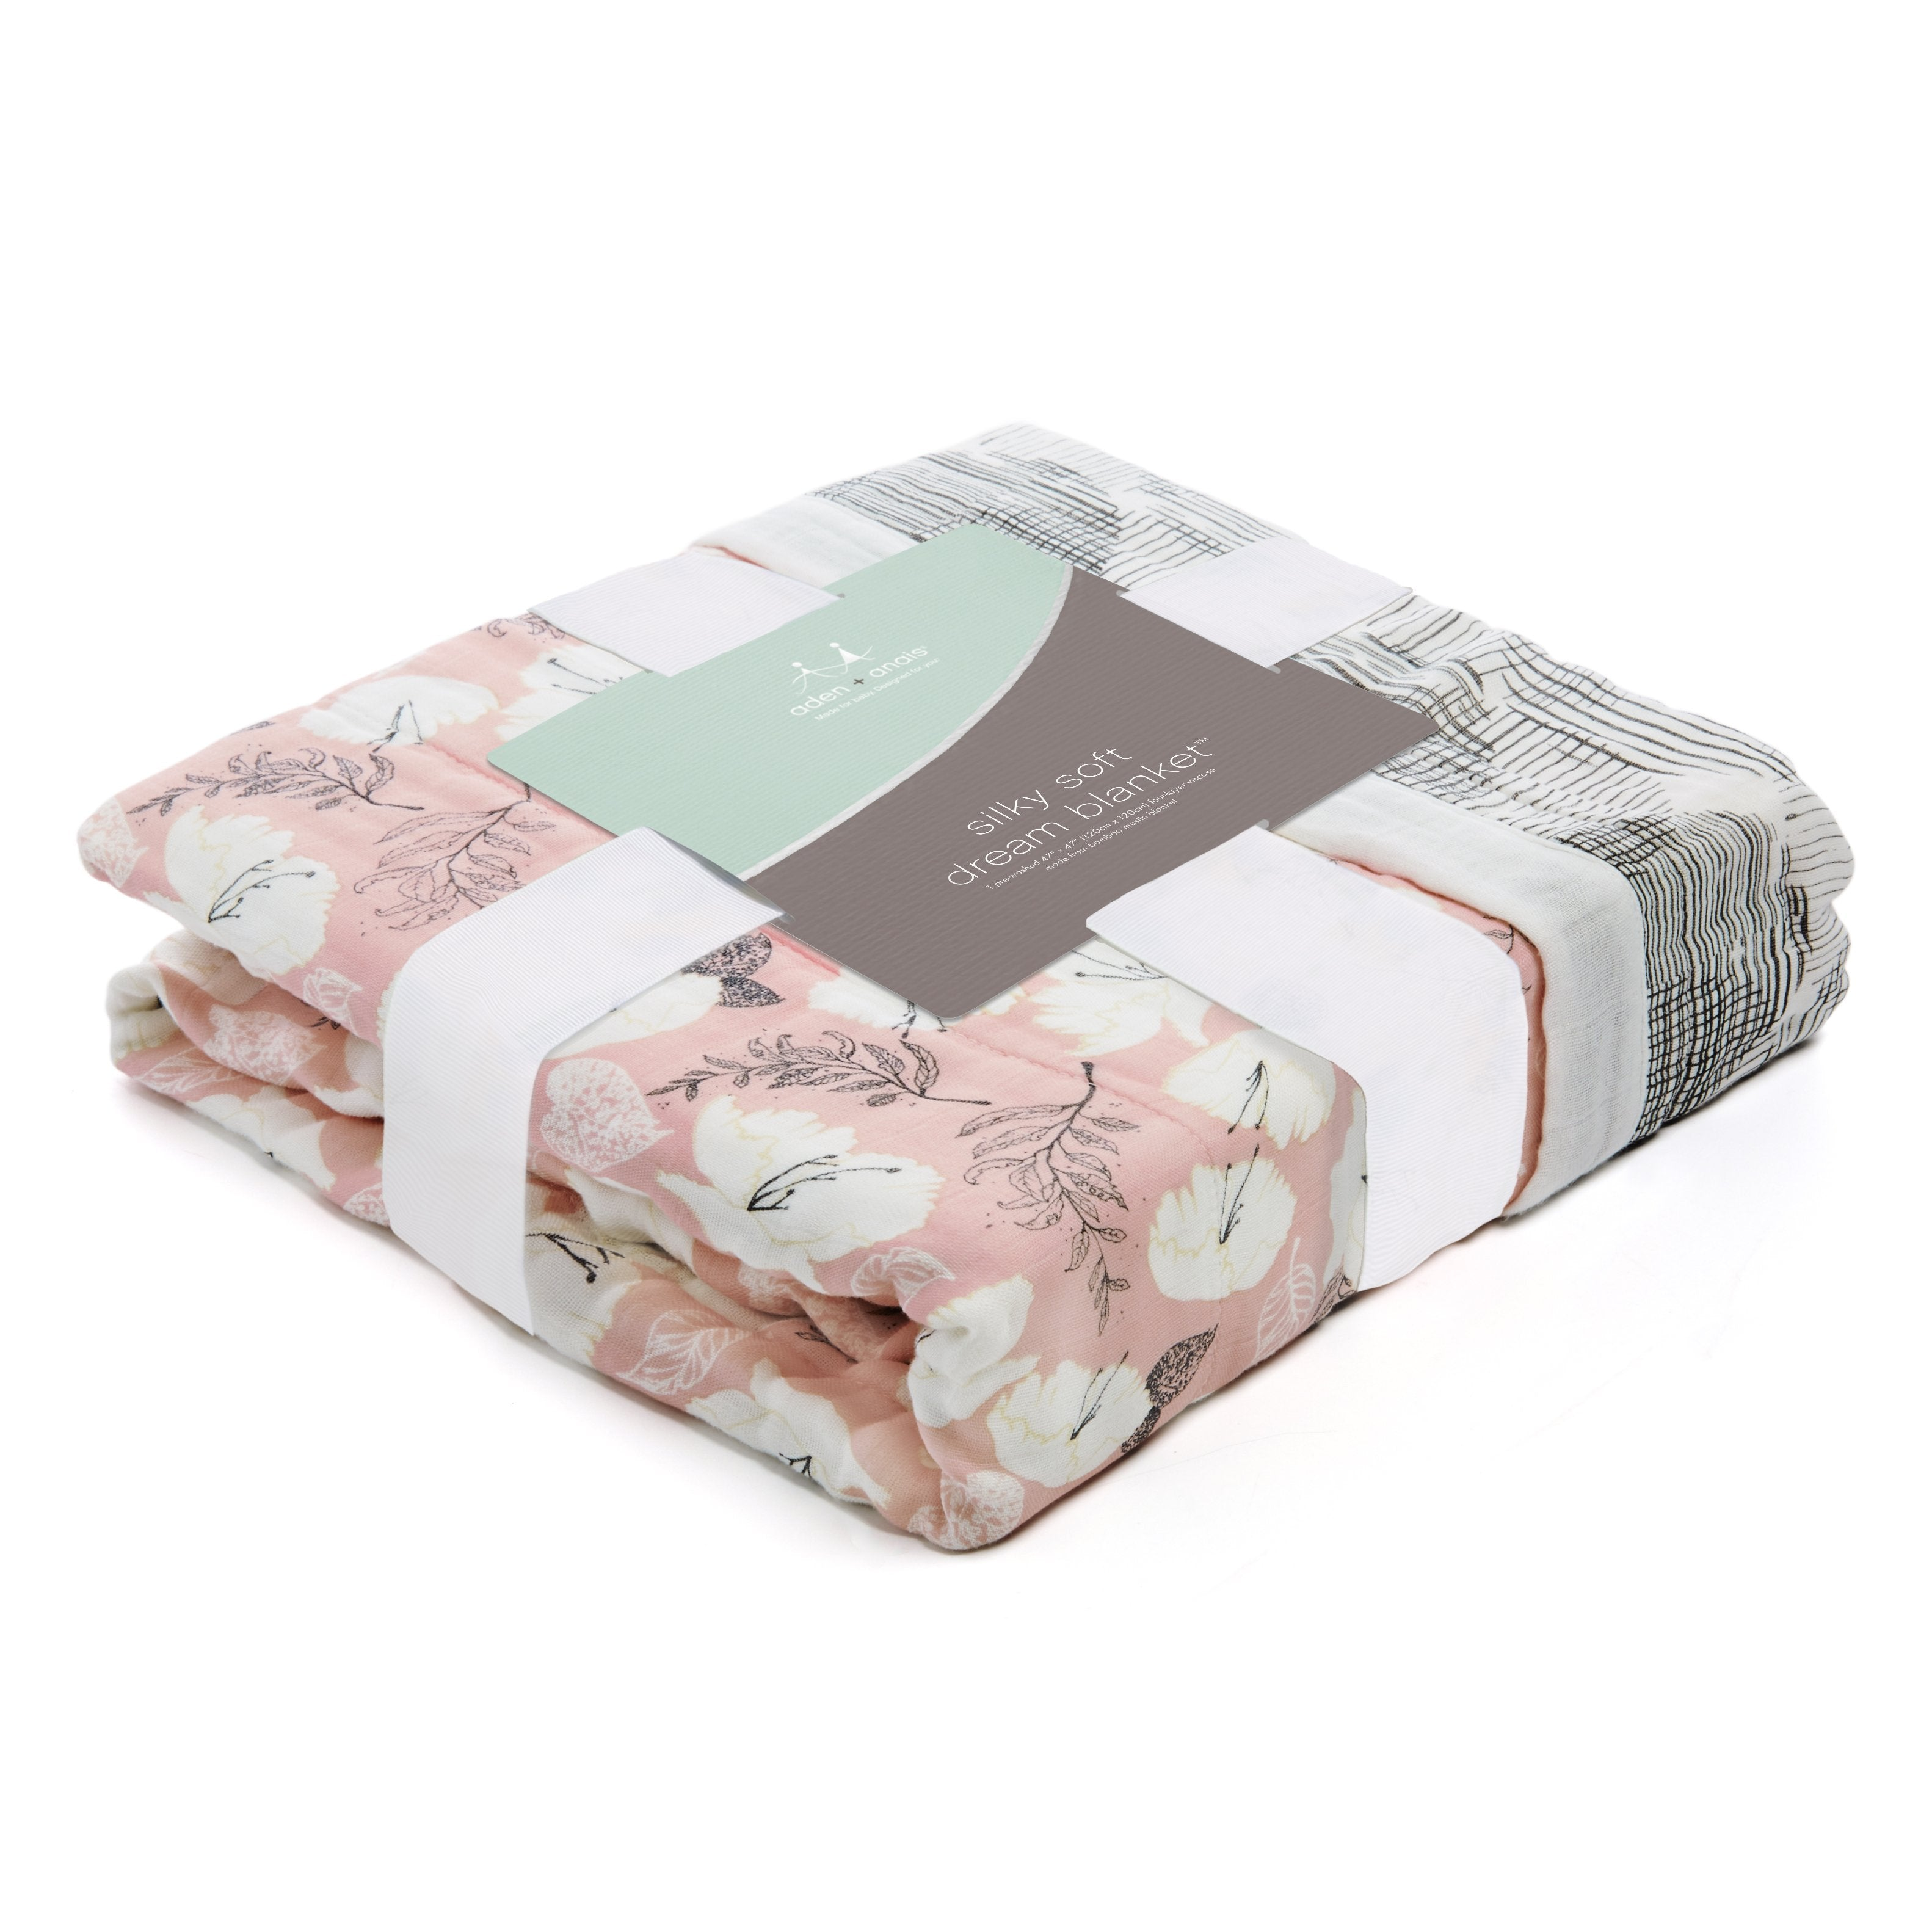 aden + anais Silky Soft Dream Blanket - Pretty Petals-Soft Petals